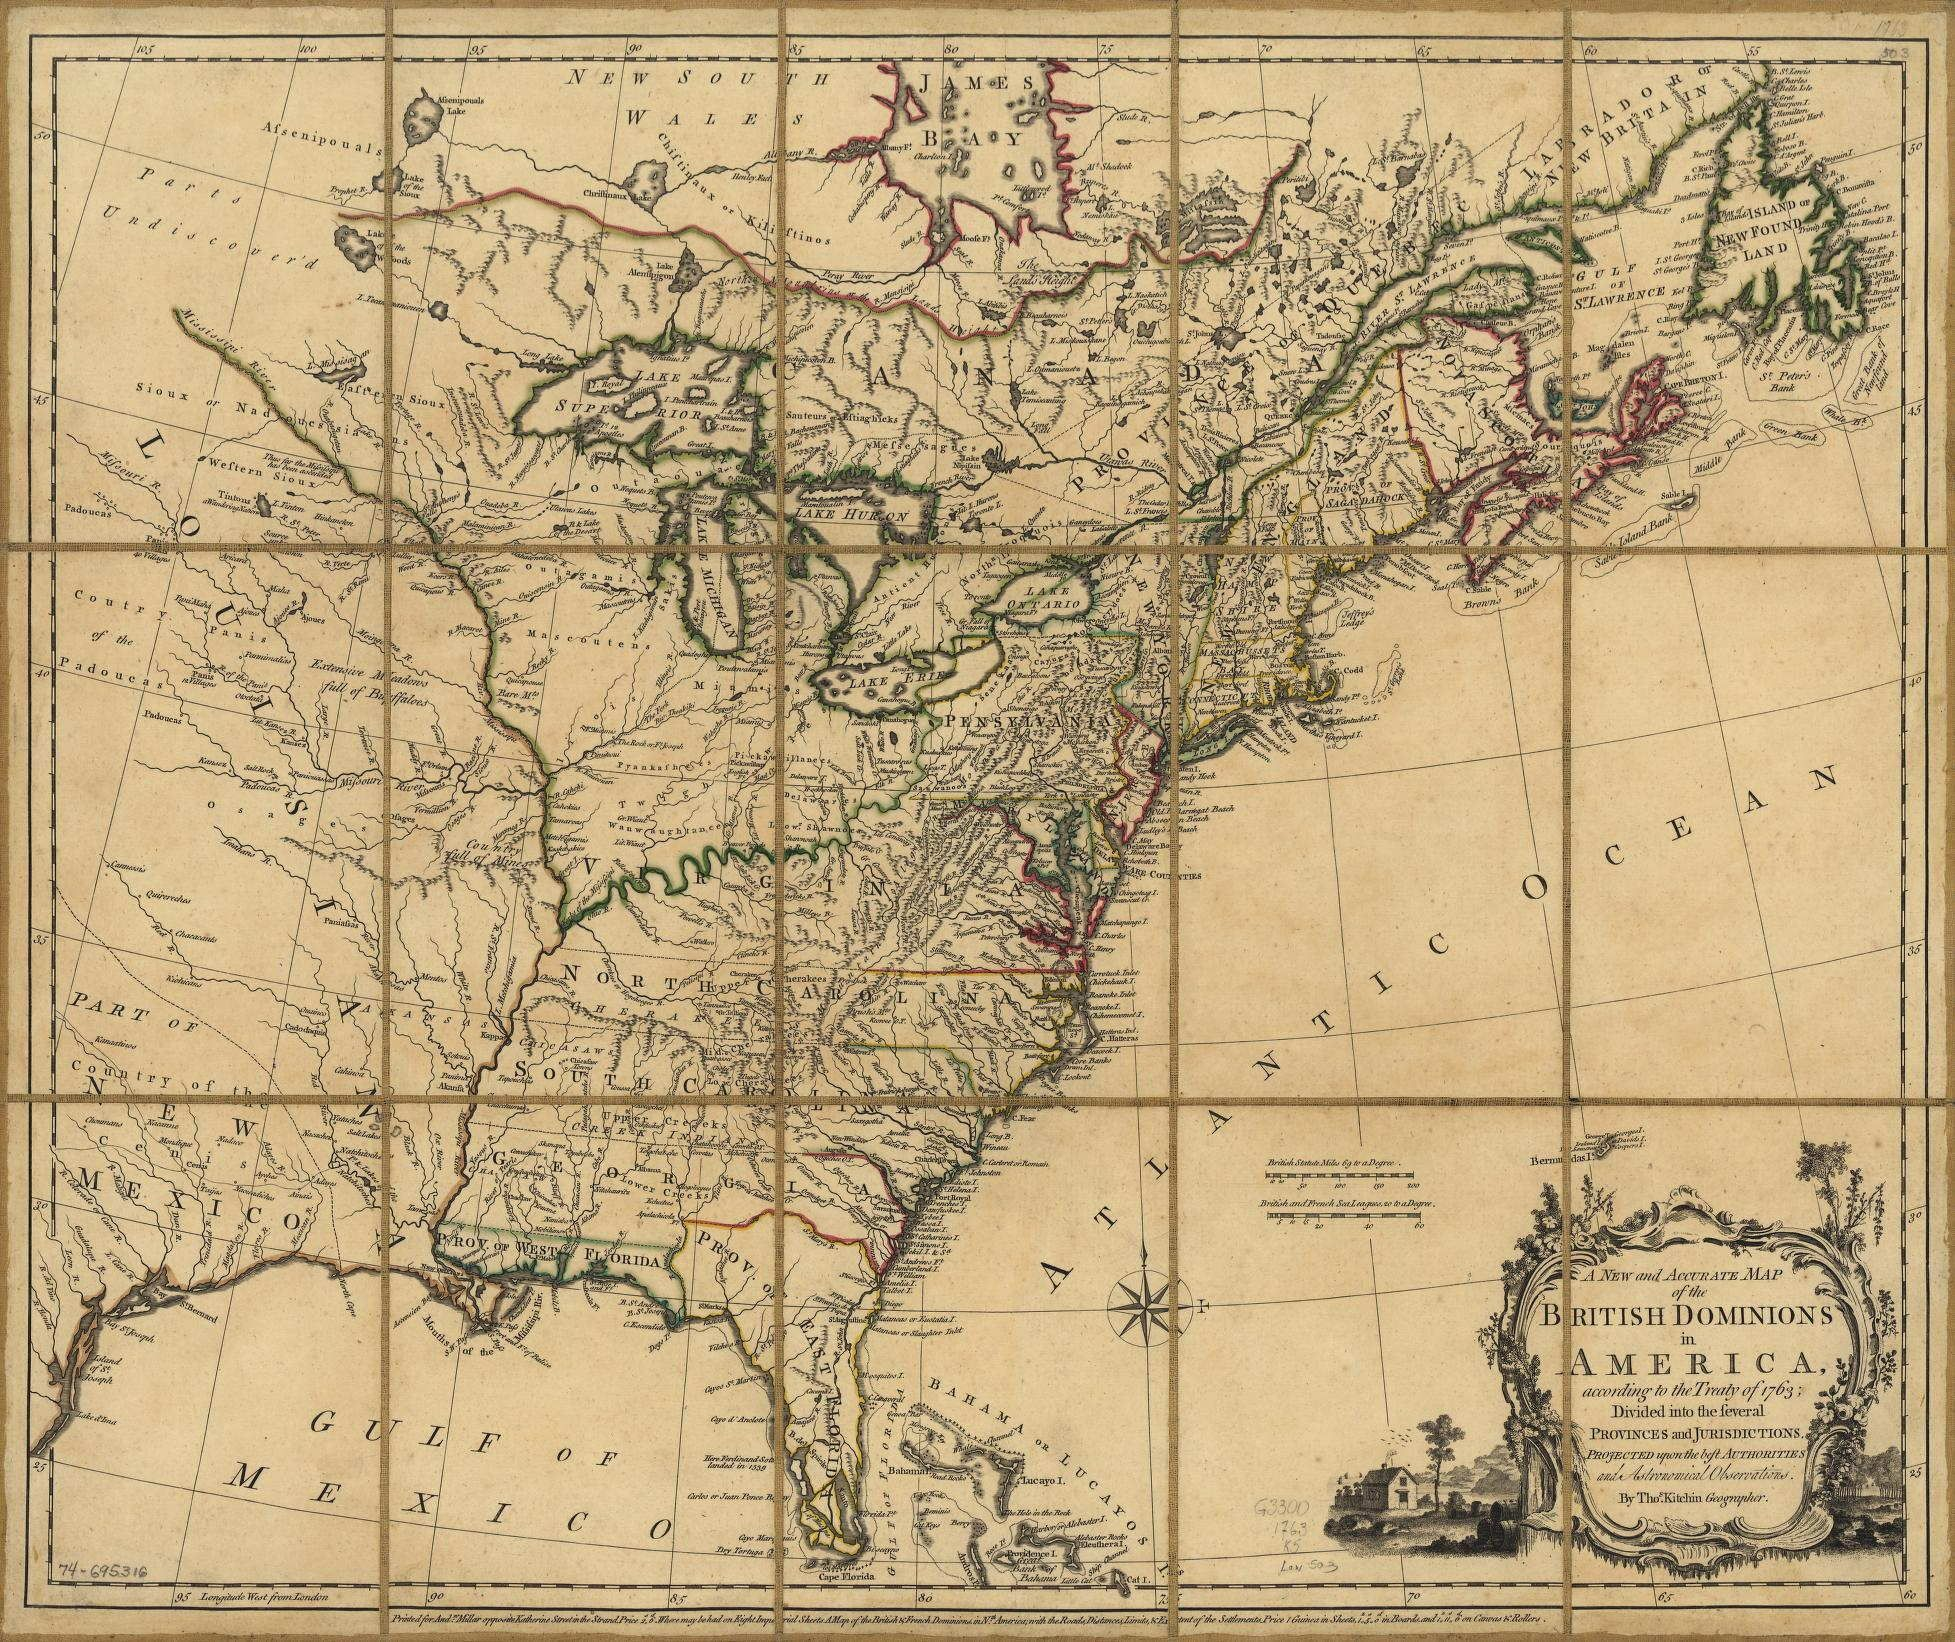 1765 to 1769 pennsylvania maps history museum usa 1700s 1765 to 1769 pennsylvania maps sciox Choice Image